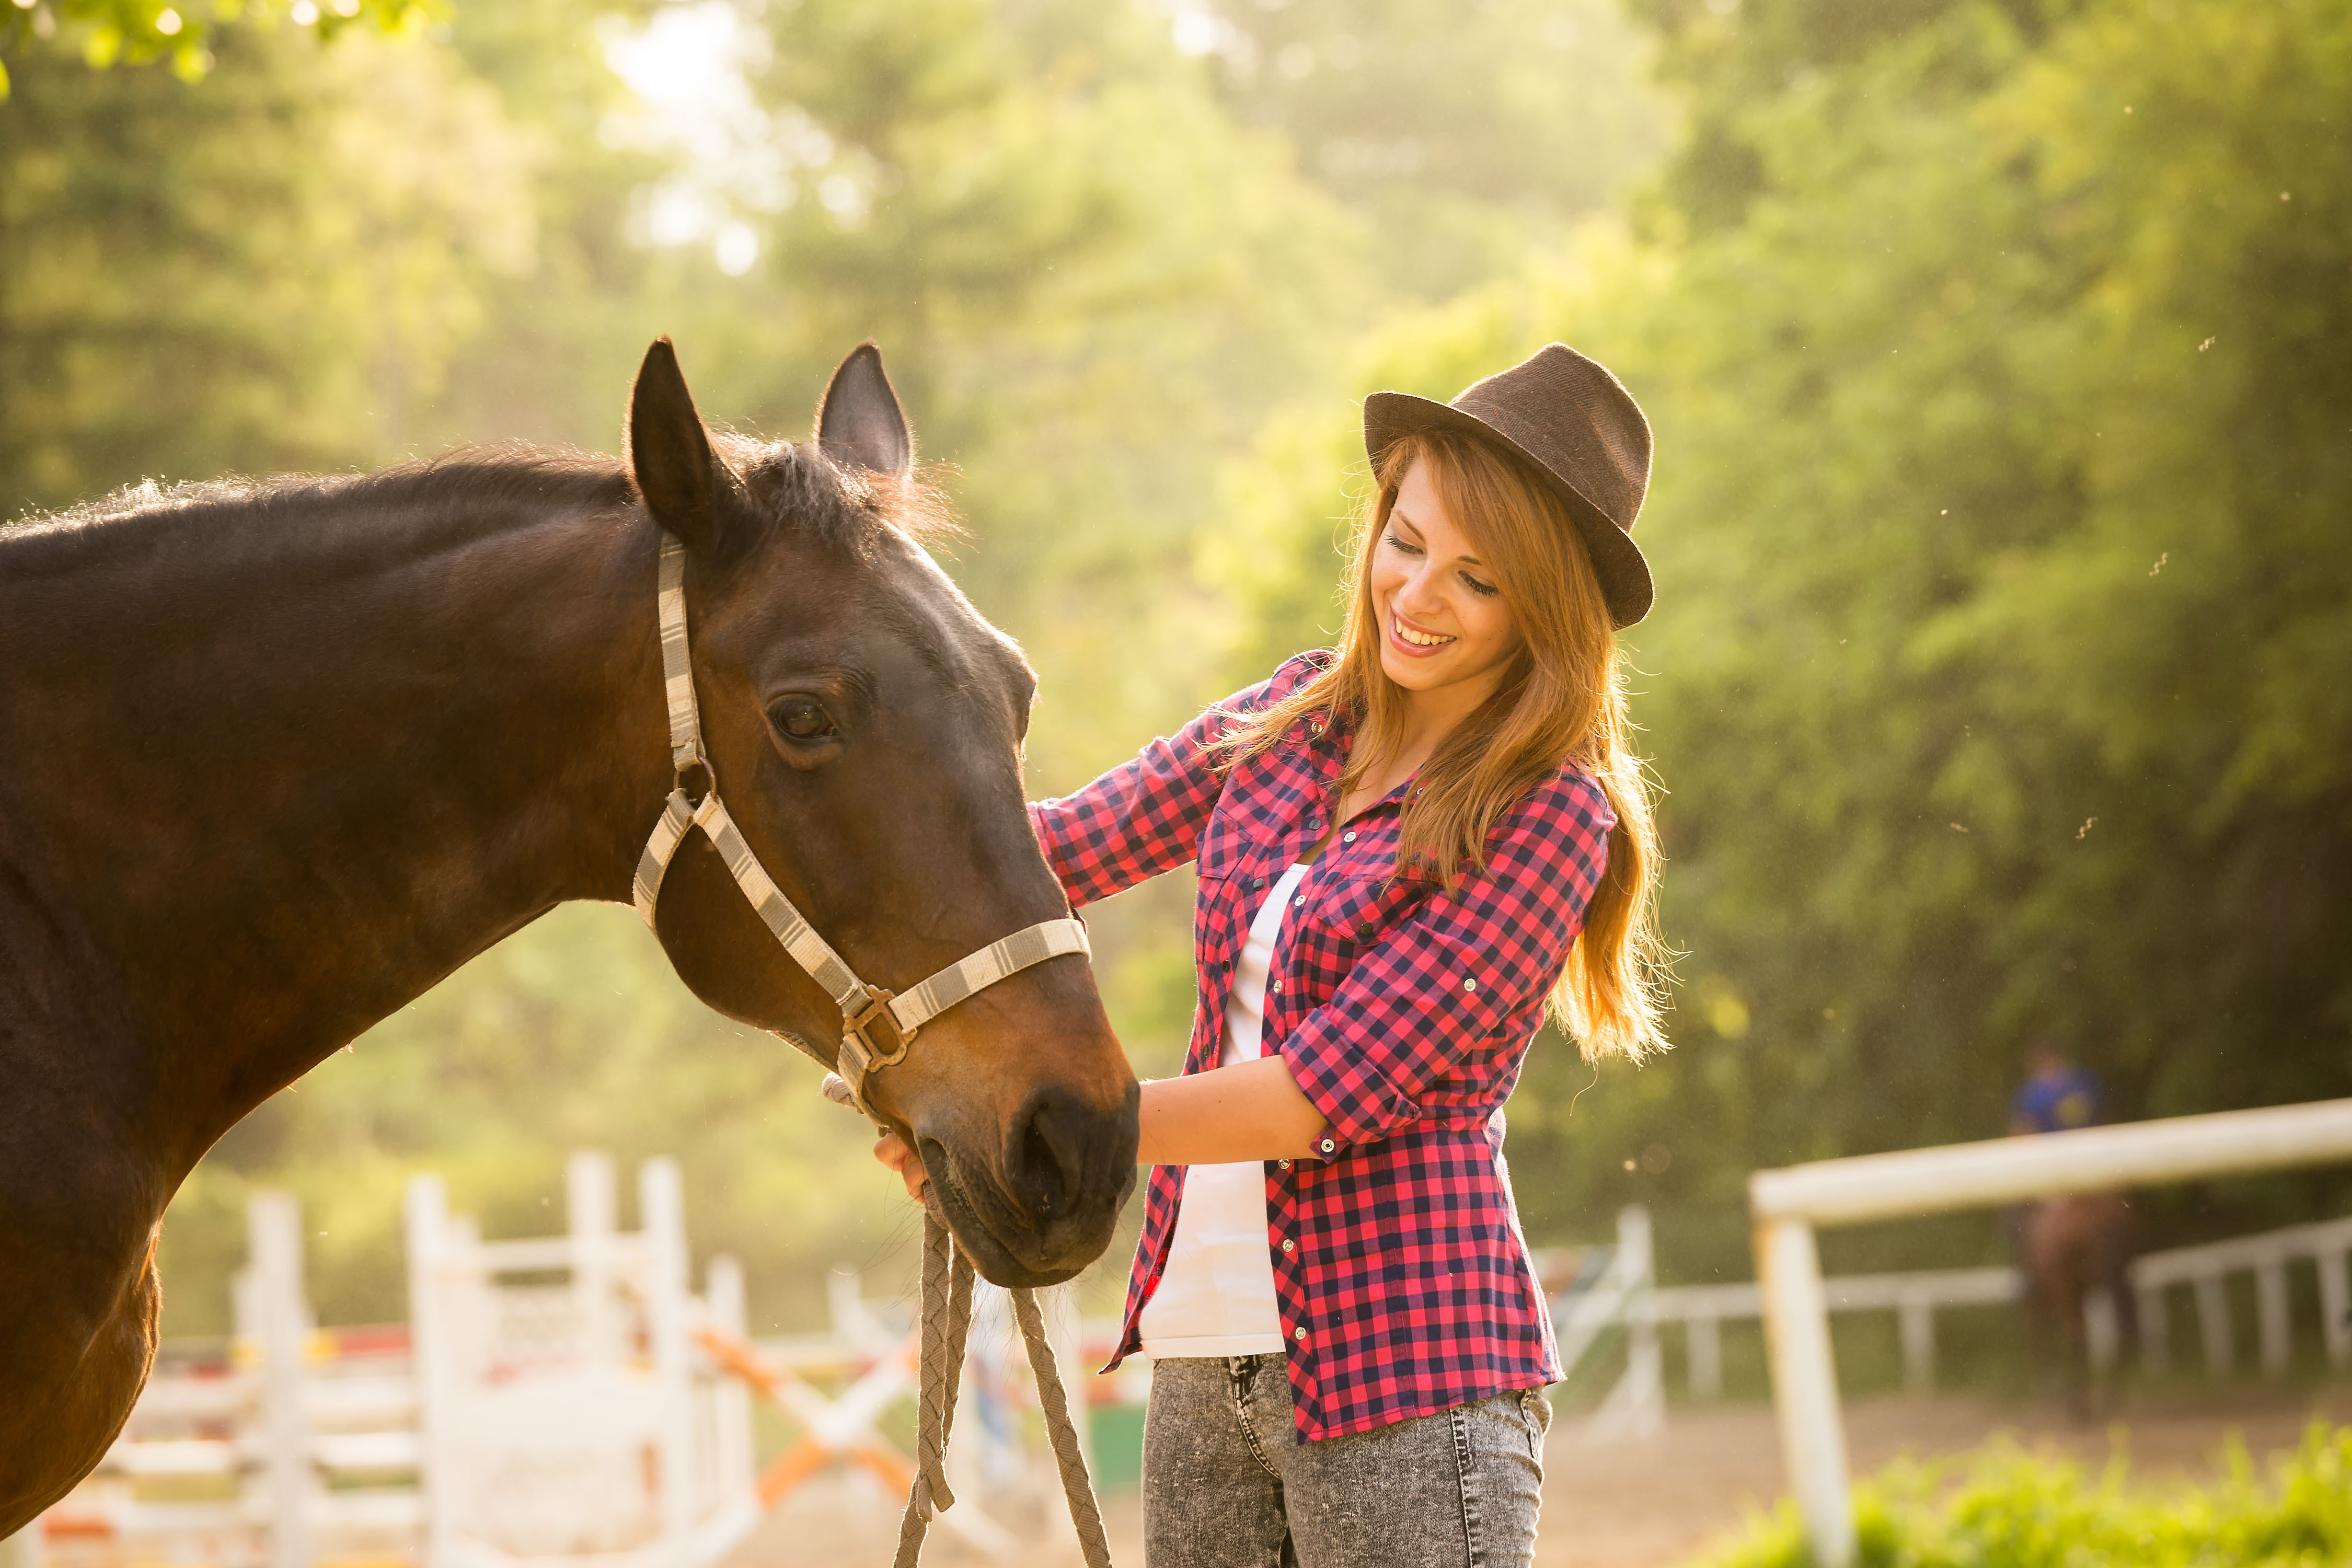 A team of psychologists led by the University of Sussex has found that horses remember people's facial expressions, which allows them to identify individuals who may be a threat.